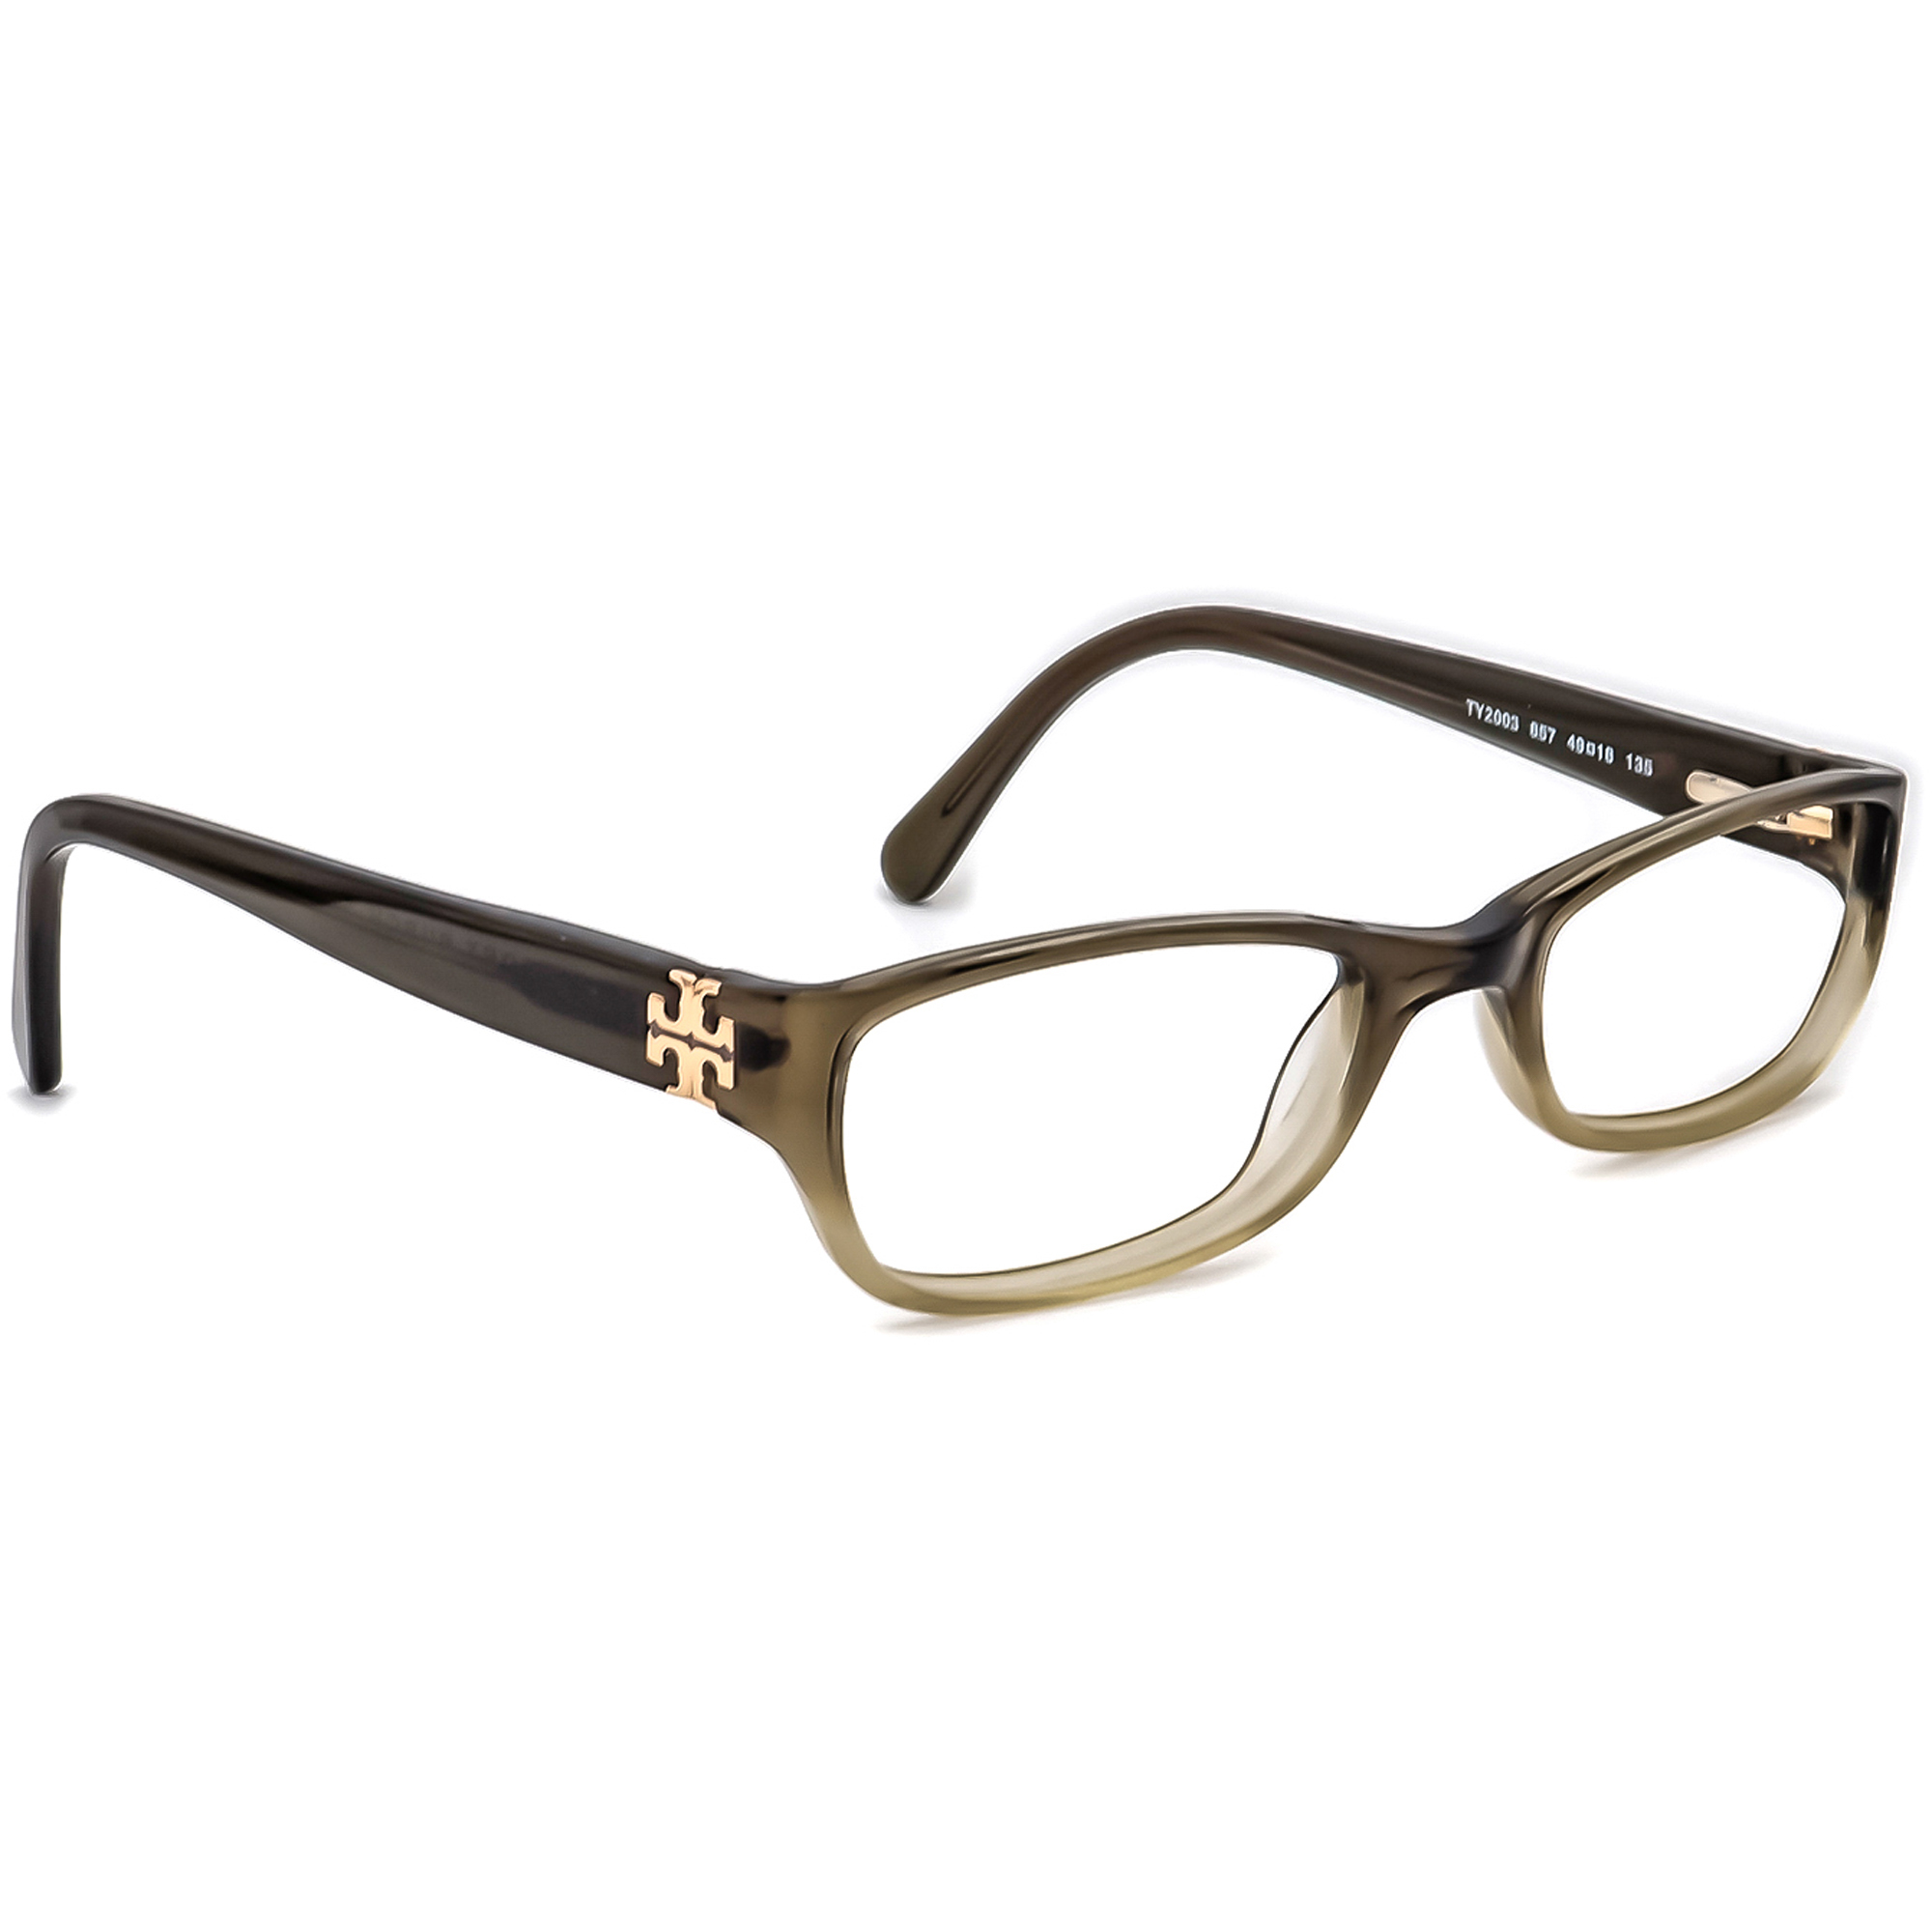 Tory Burch TY 2003 857 Eyeglasses